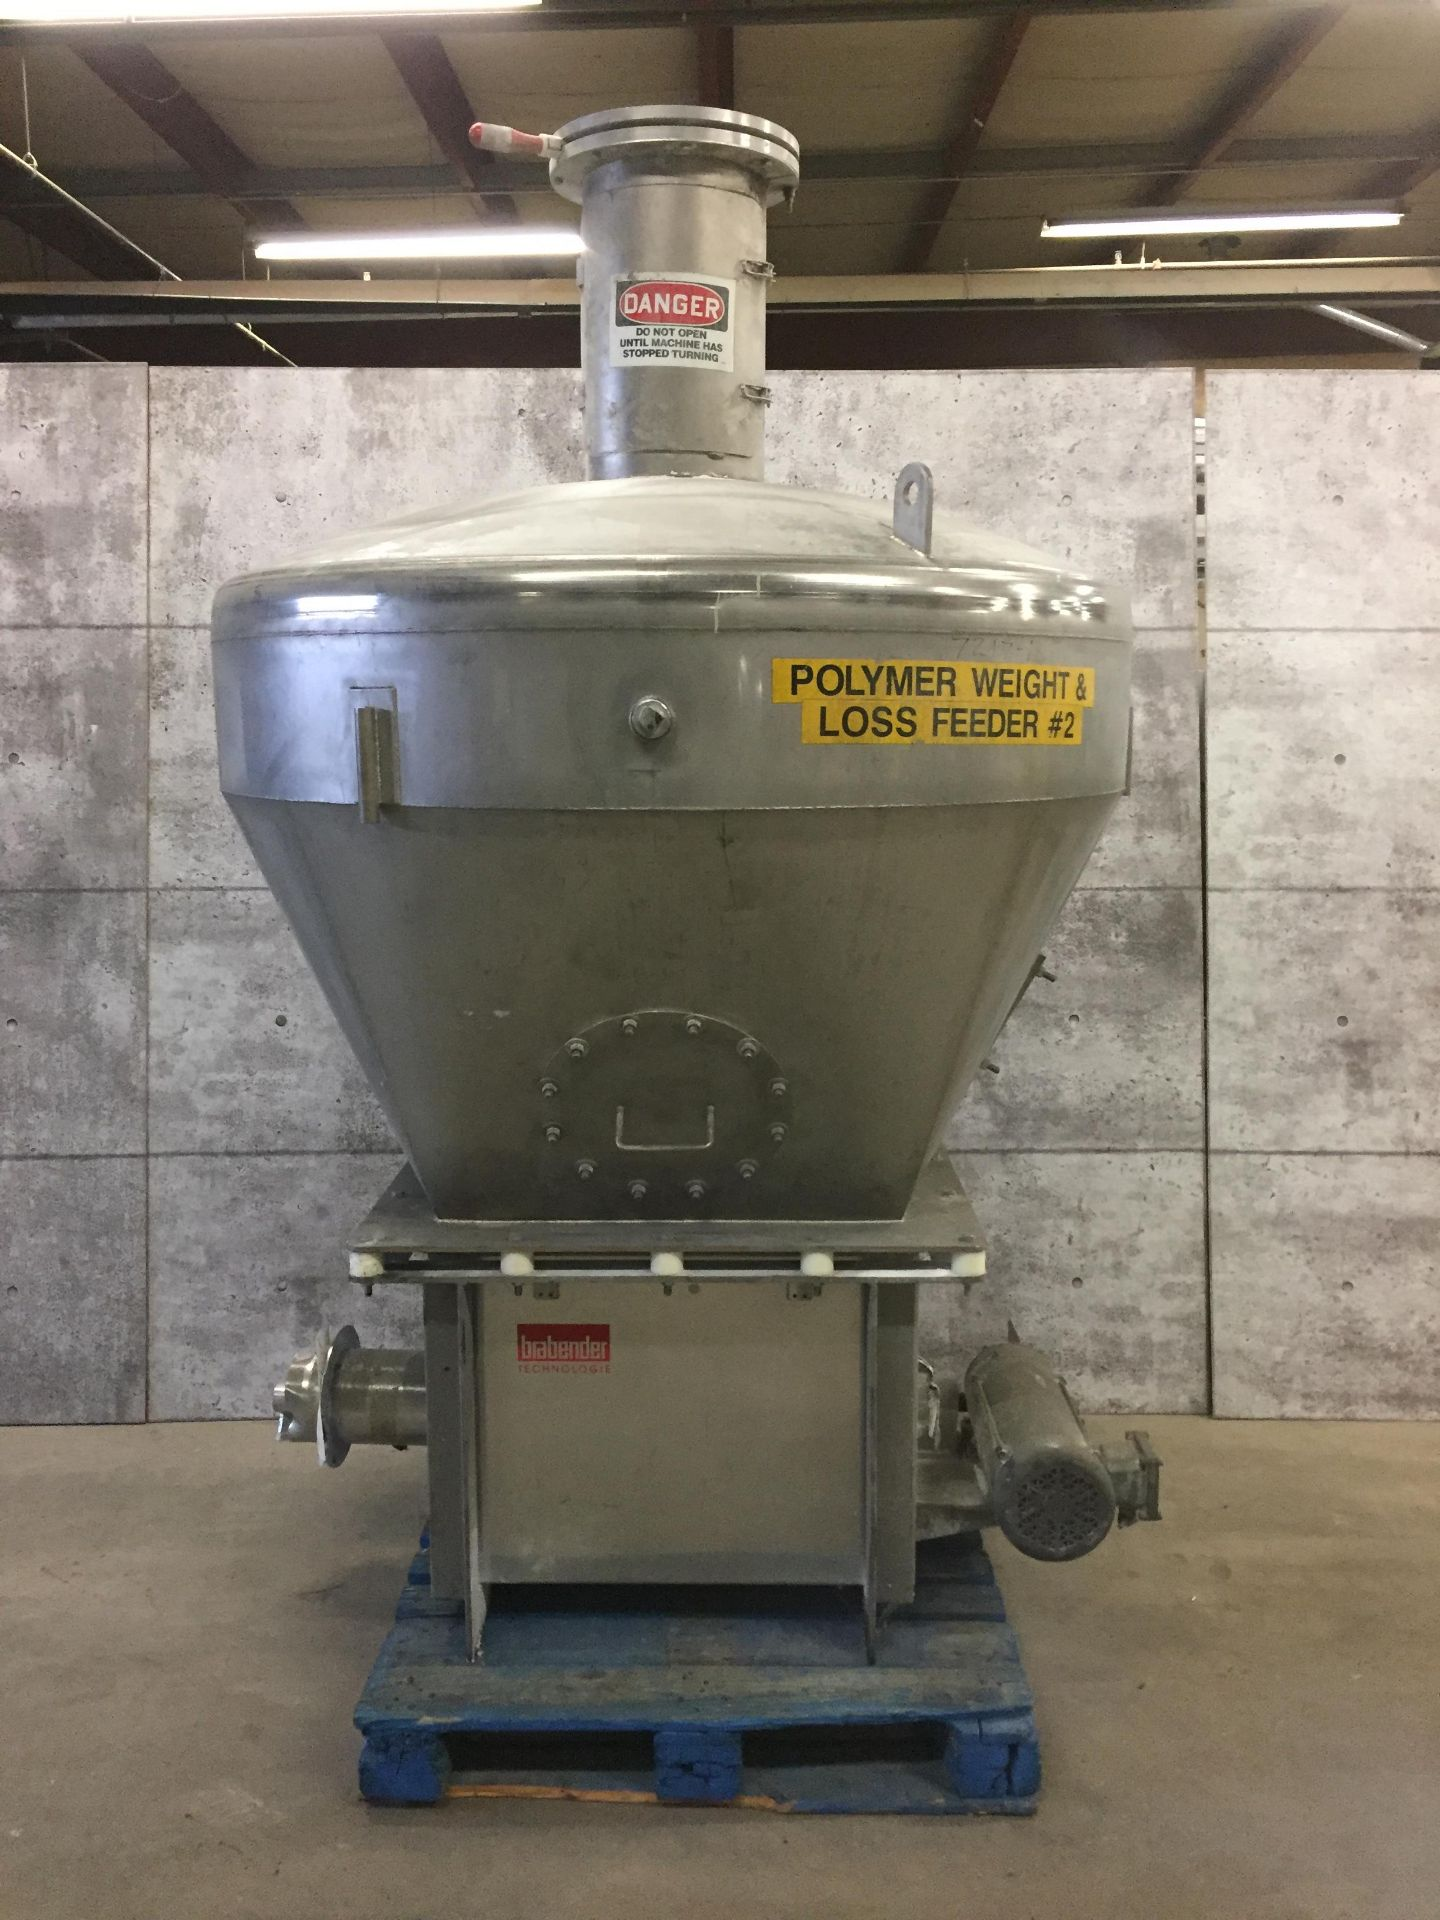 BALDOR (NO. AF 982008) STAINLESS STEEL POWDER PACKAGING UNIT - TAKES BULK POWDER AND CONTROLS THE